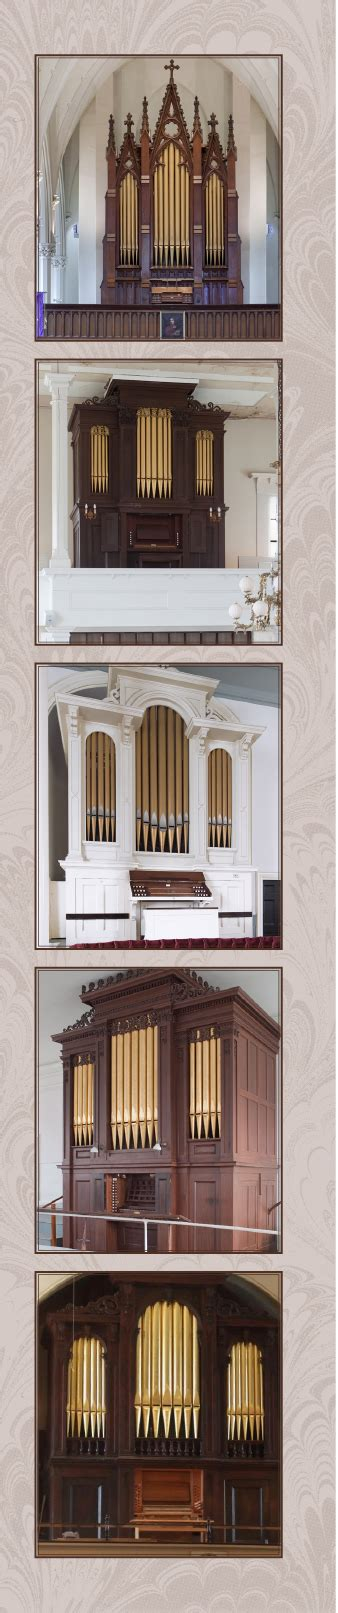 Maine Historic Organ Institute Faculty St S Organ Society Dedicated To The Preservation